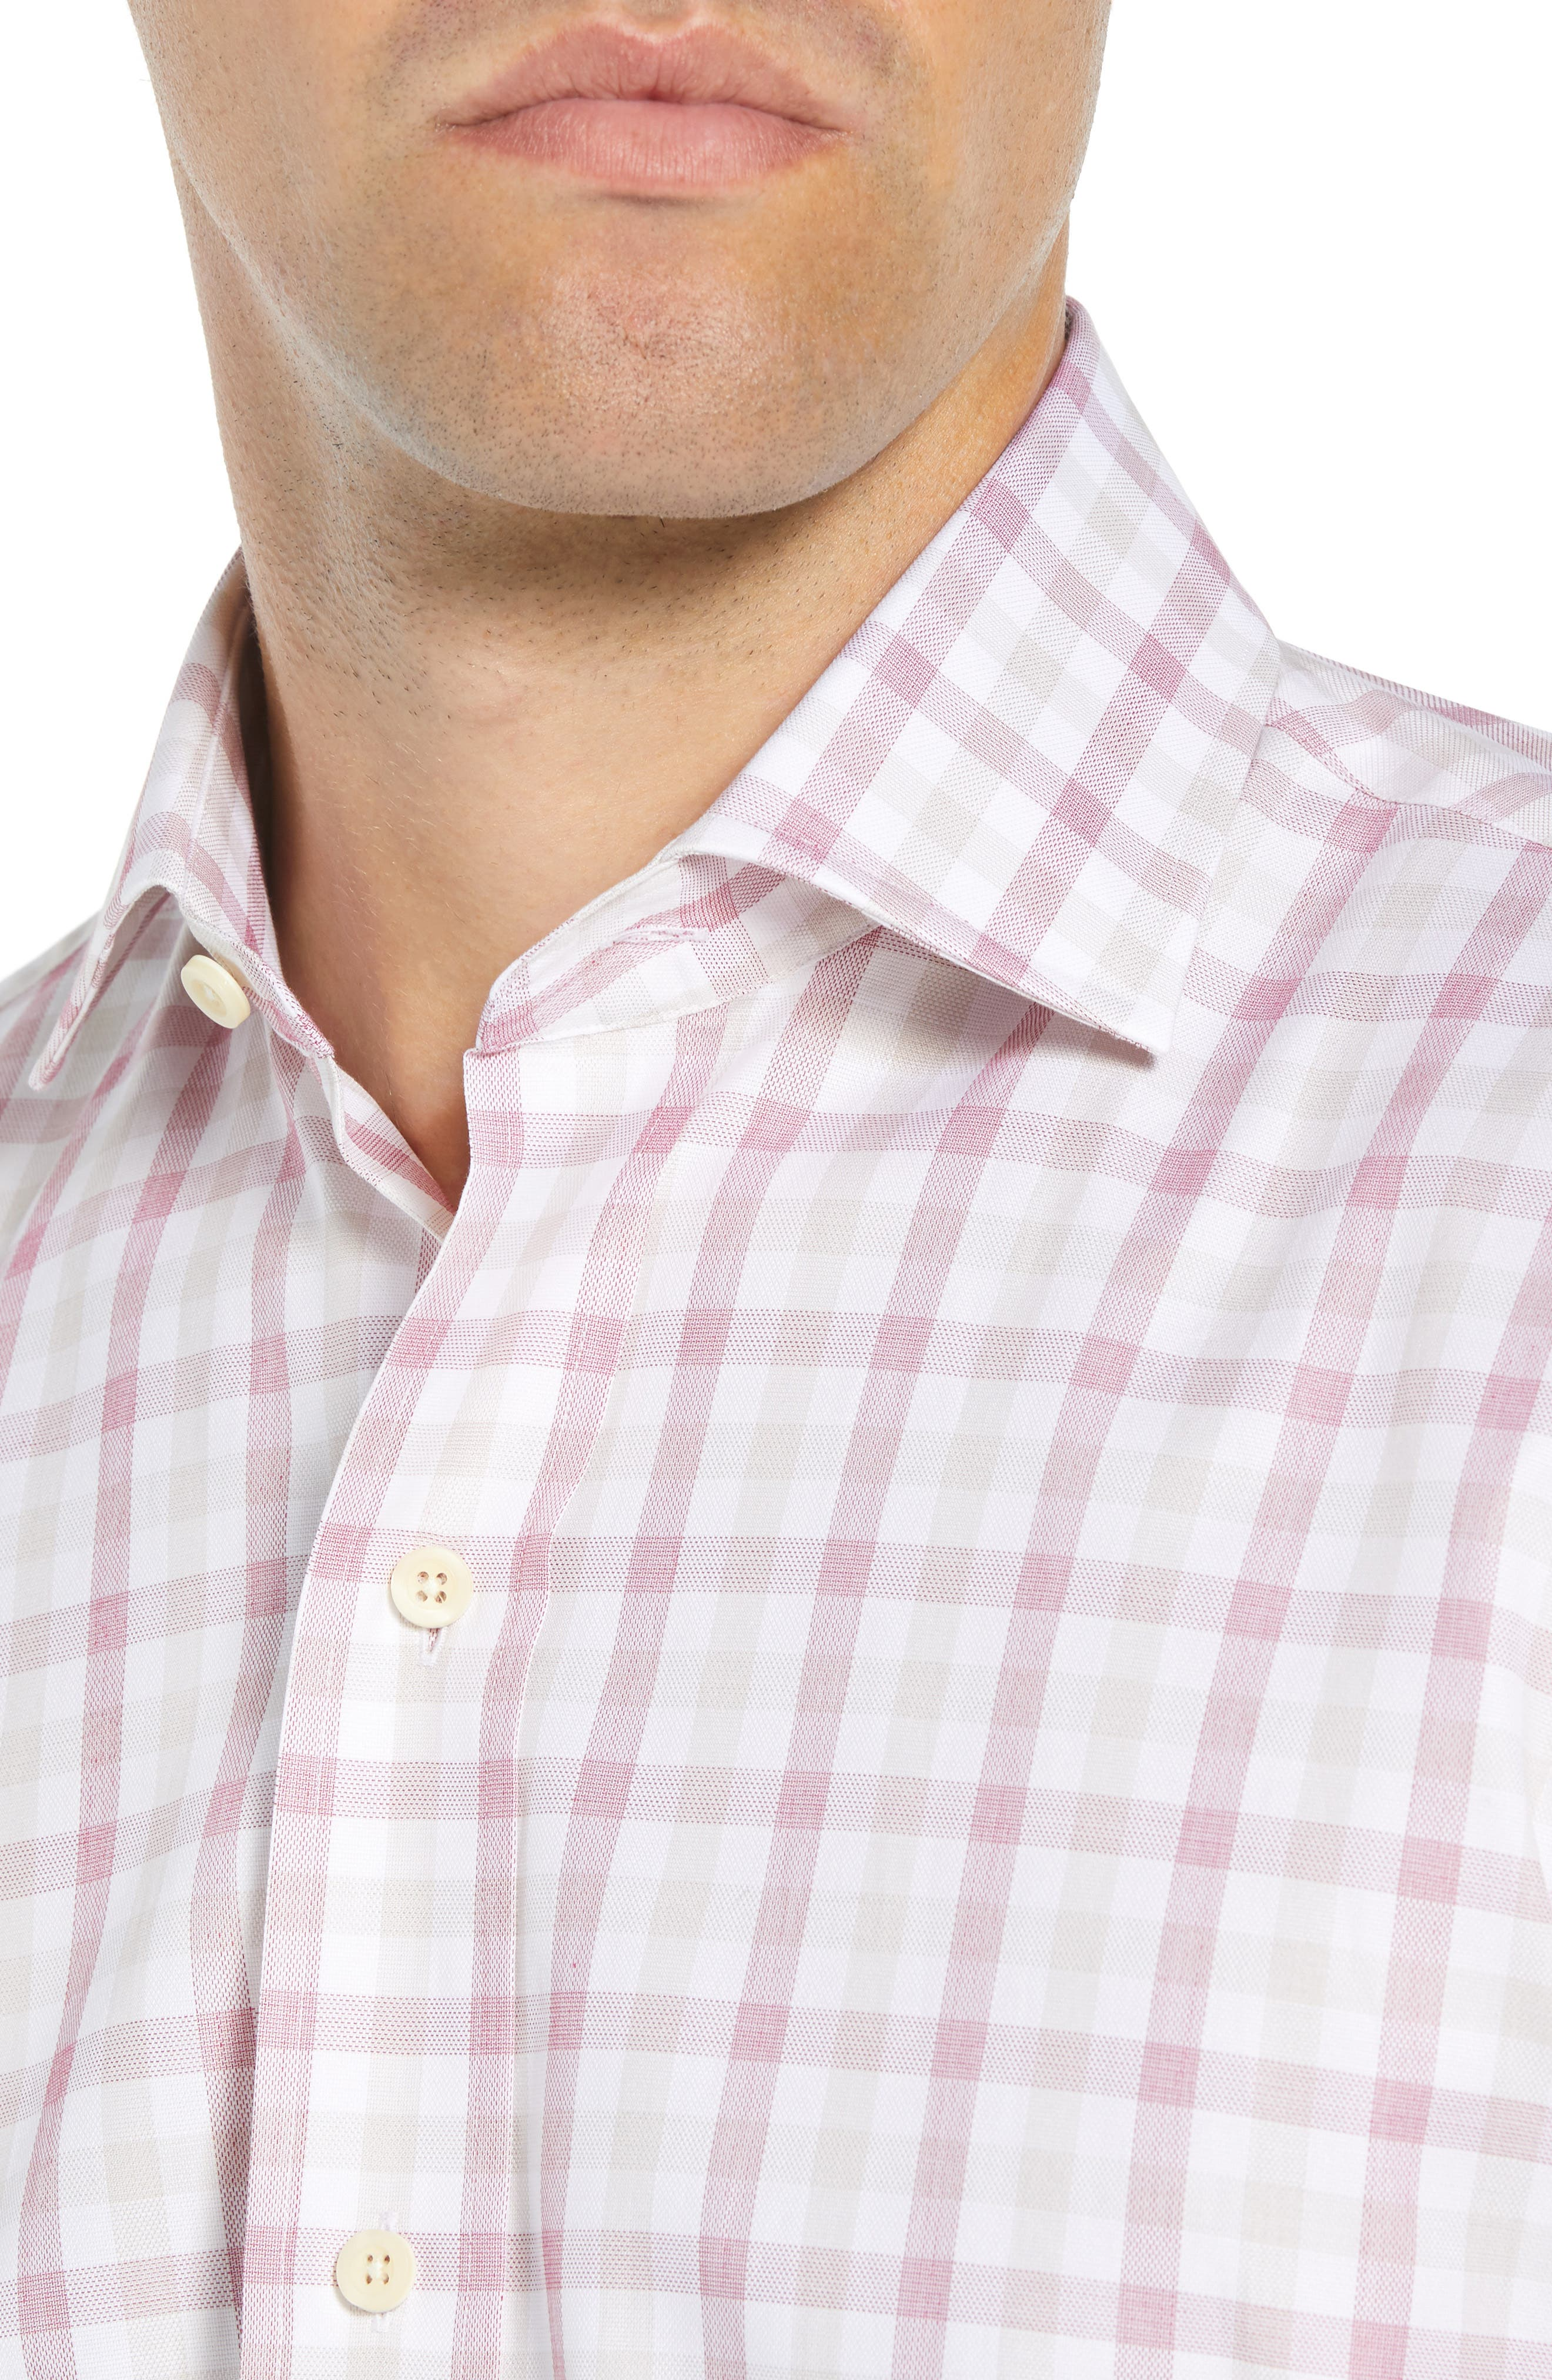 Corbly Trim Fit Check Dress Shirt,                             Alternate thumbnail 2, color,                             RED